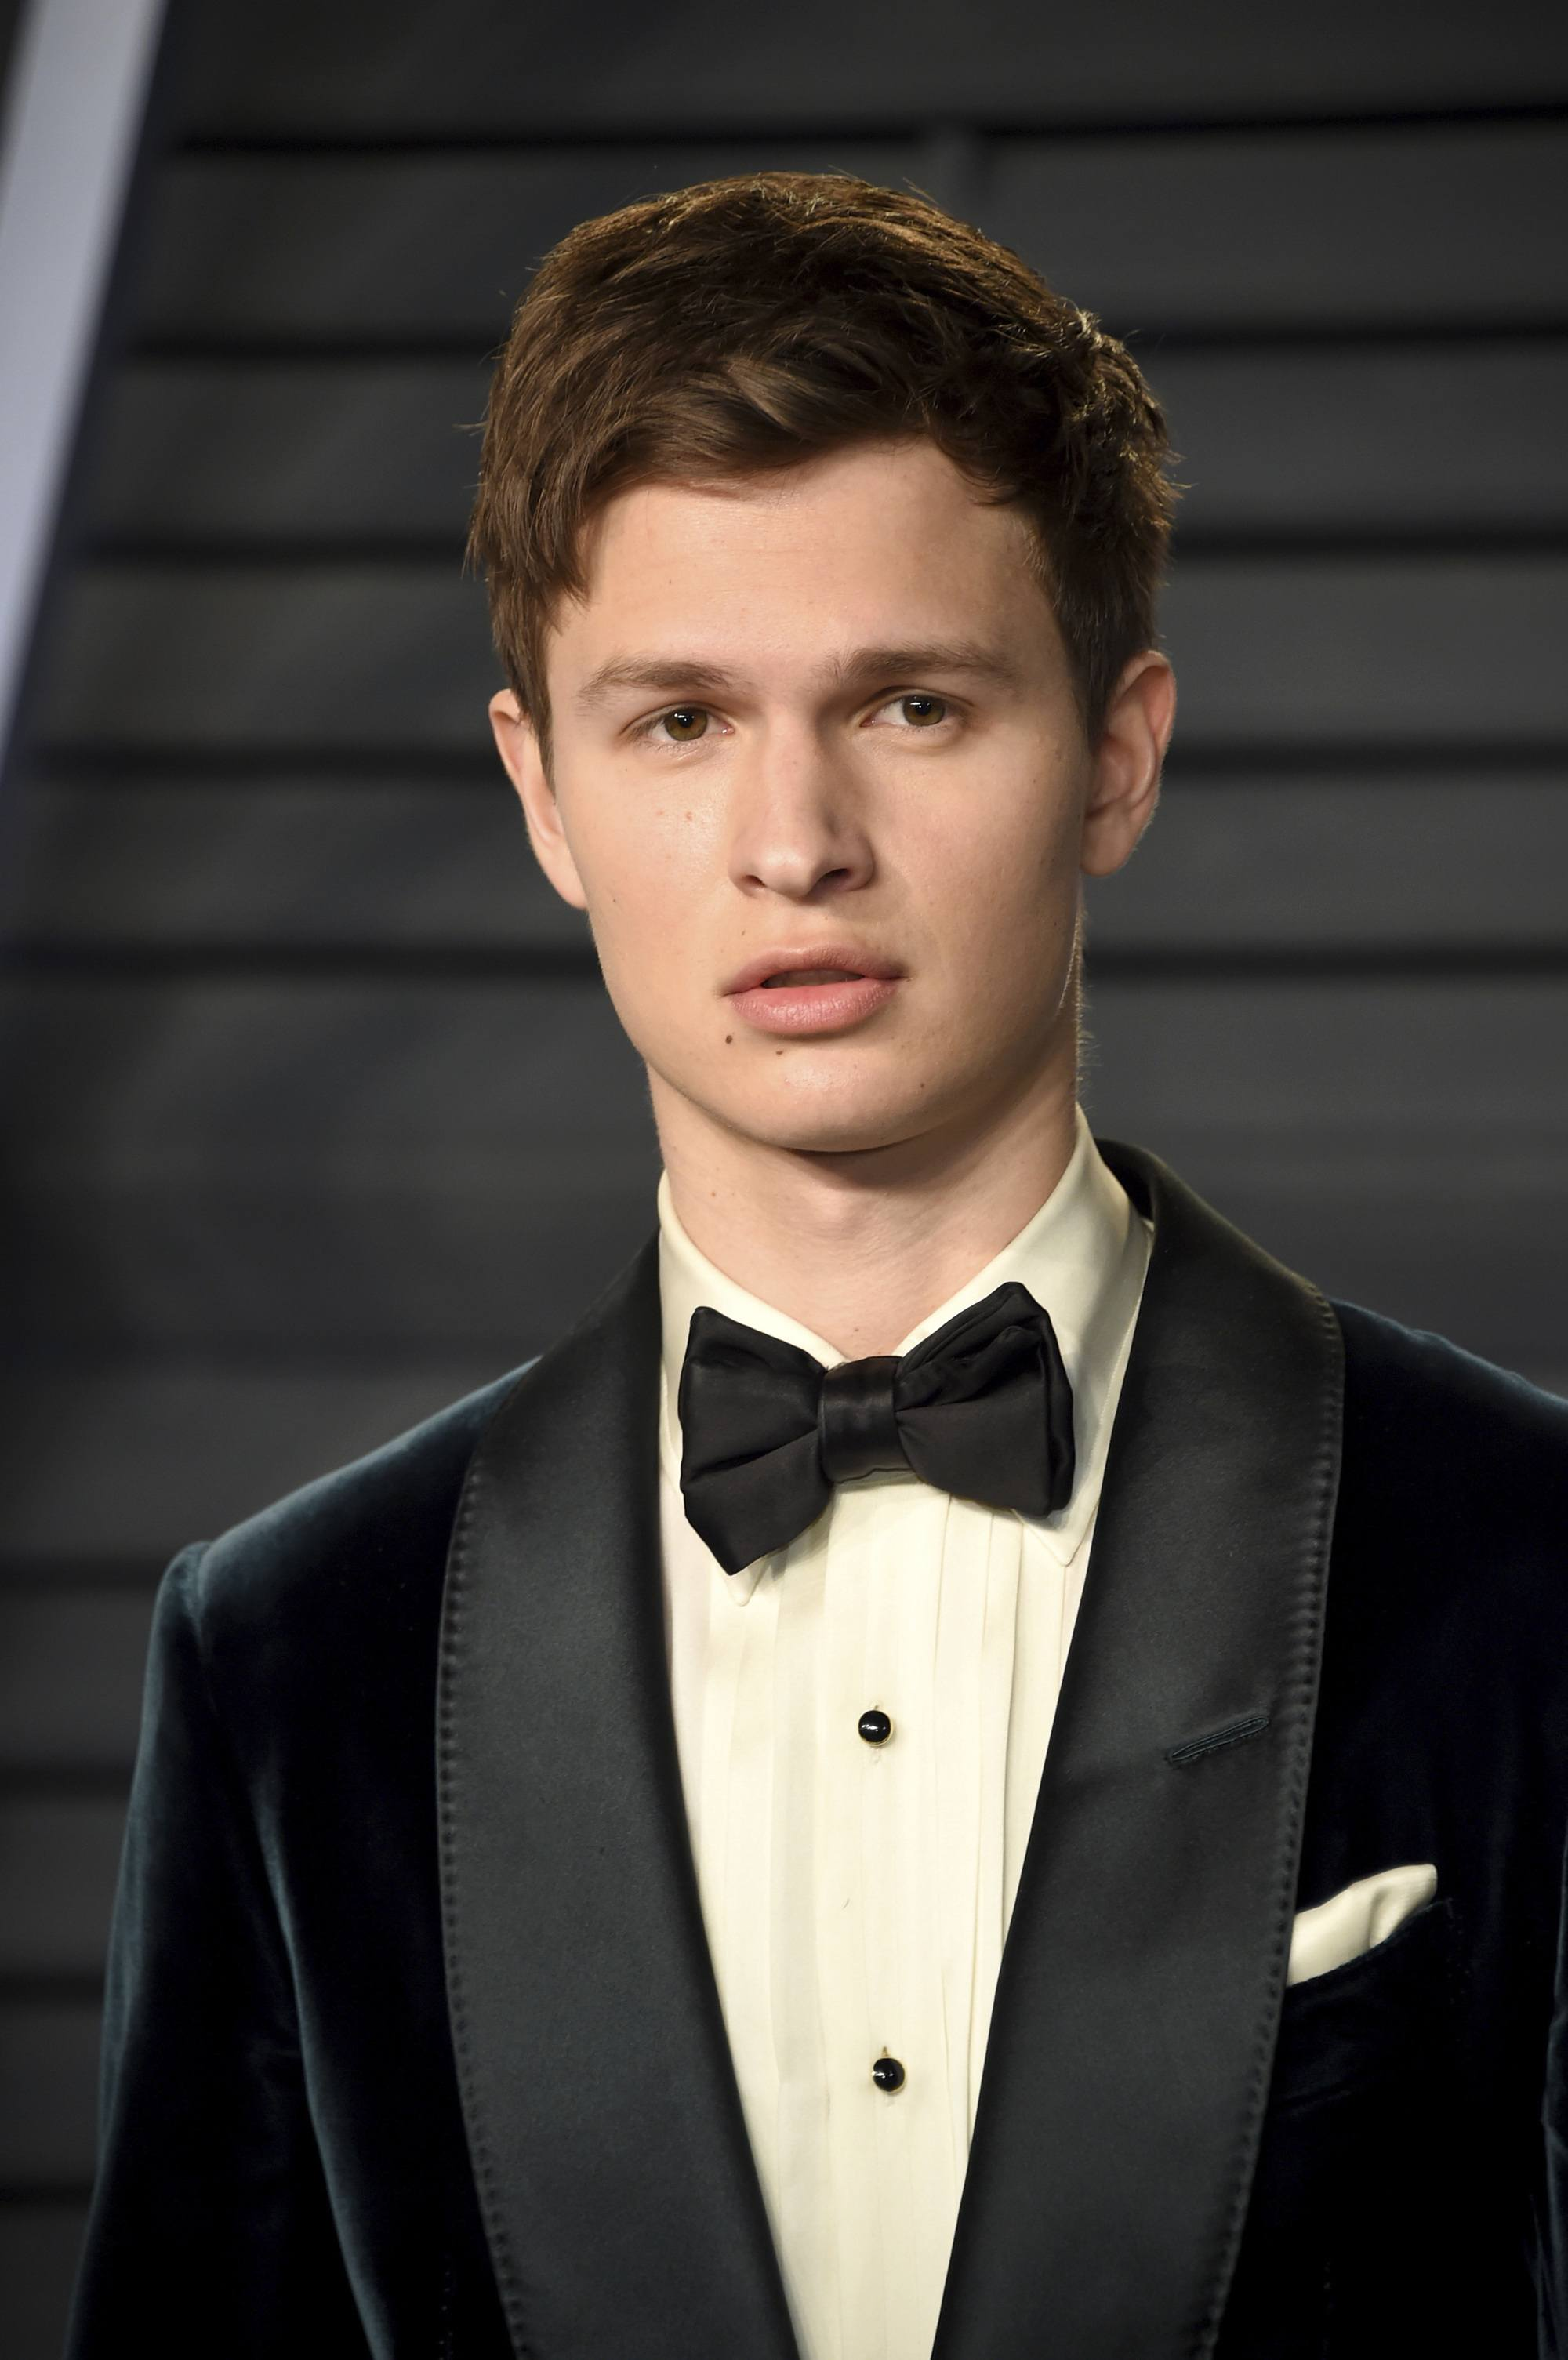 close up shot of ansel elgort wearinhg black suit with bow tie, with his hear styled into a textured mid length crop at the 90th Academy Awards